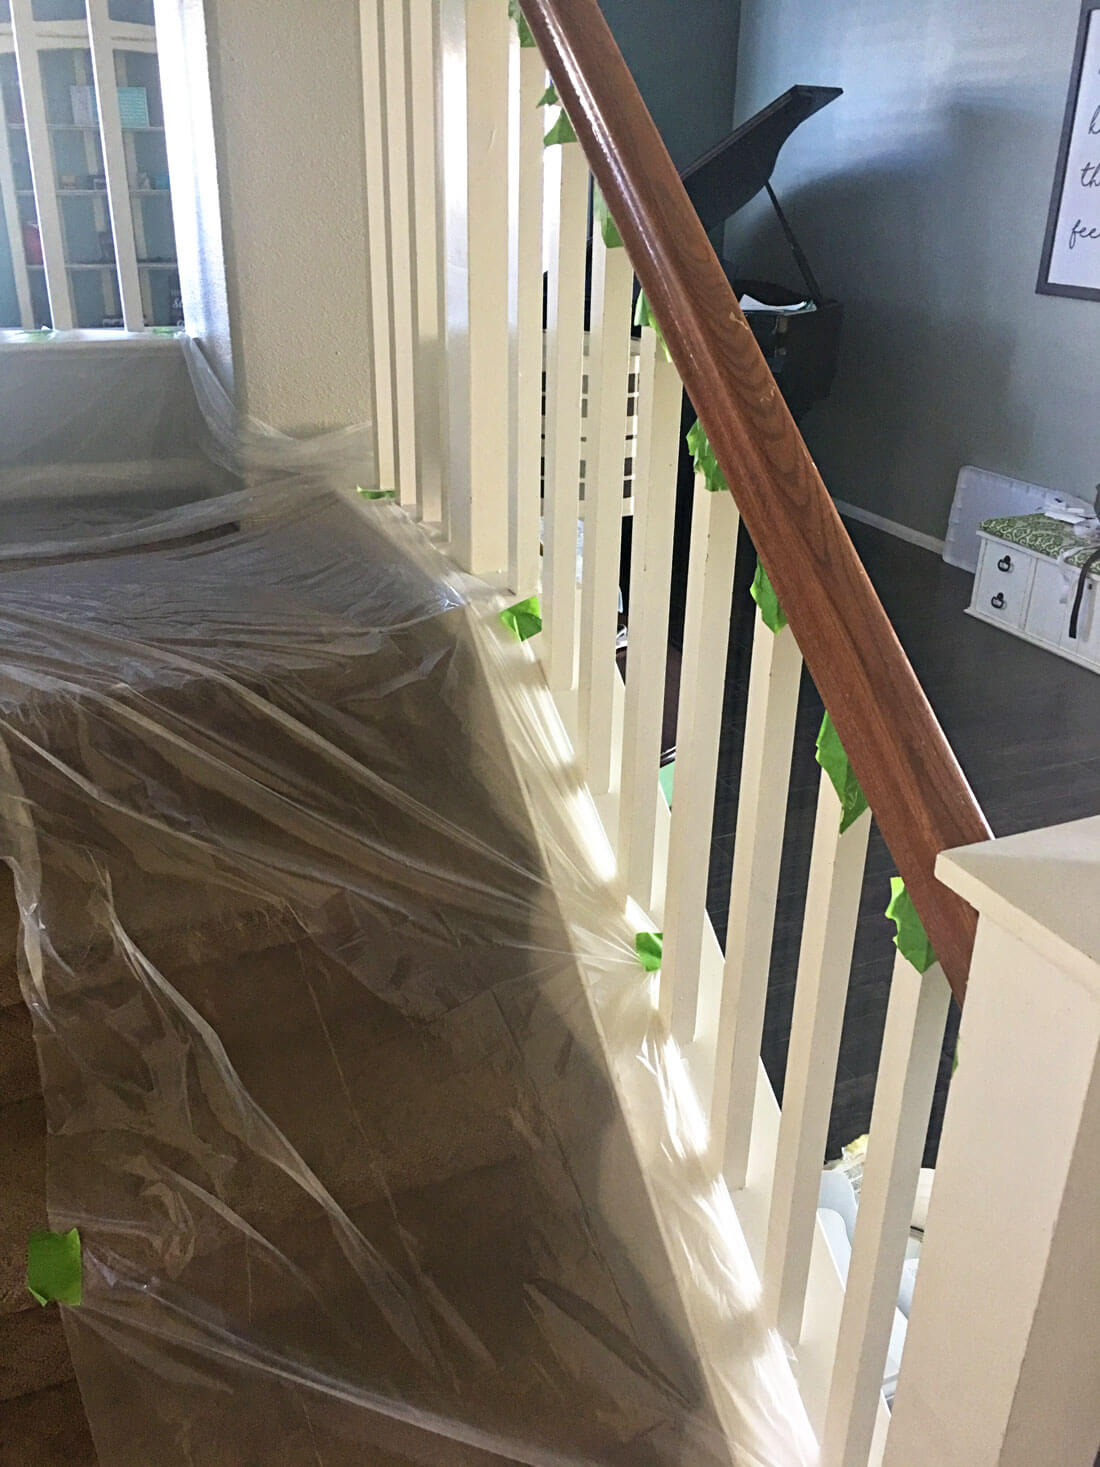 How to paint your stair railings and banister - laying down the dropcloth